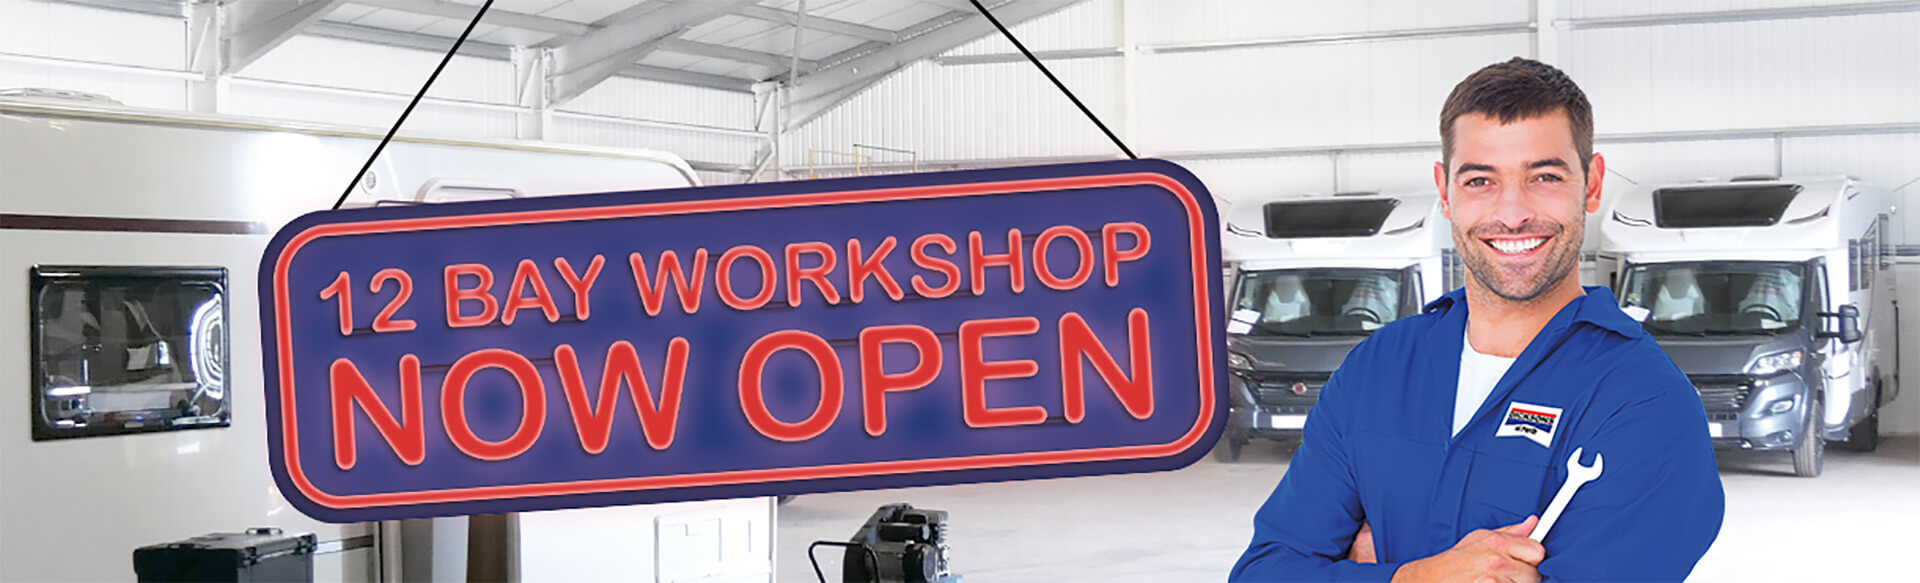 Aftersales - 12 Bay Workshop now open